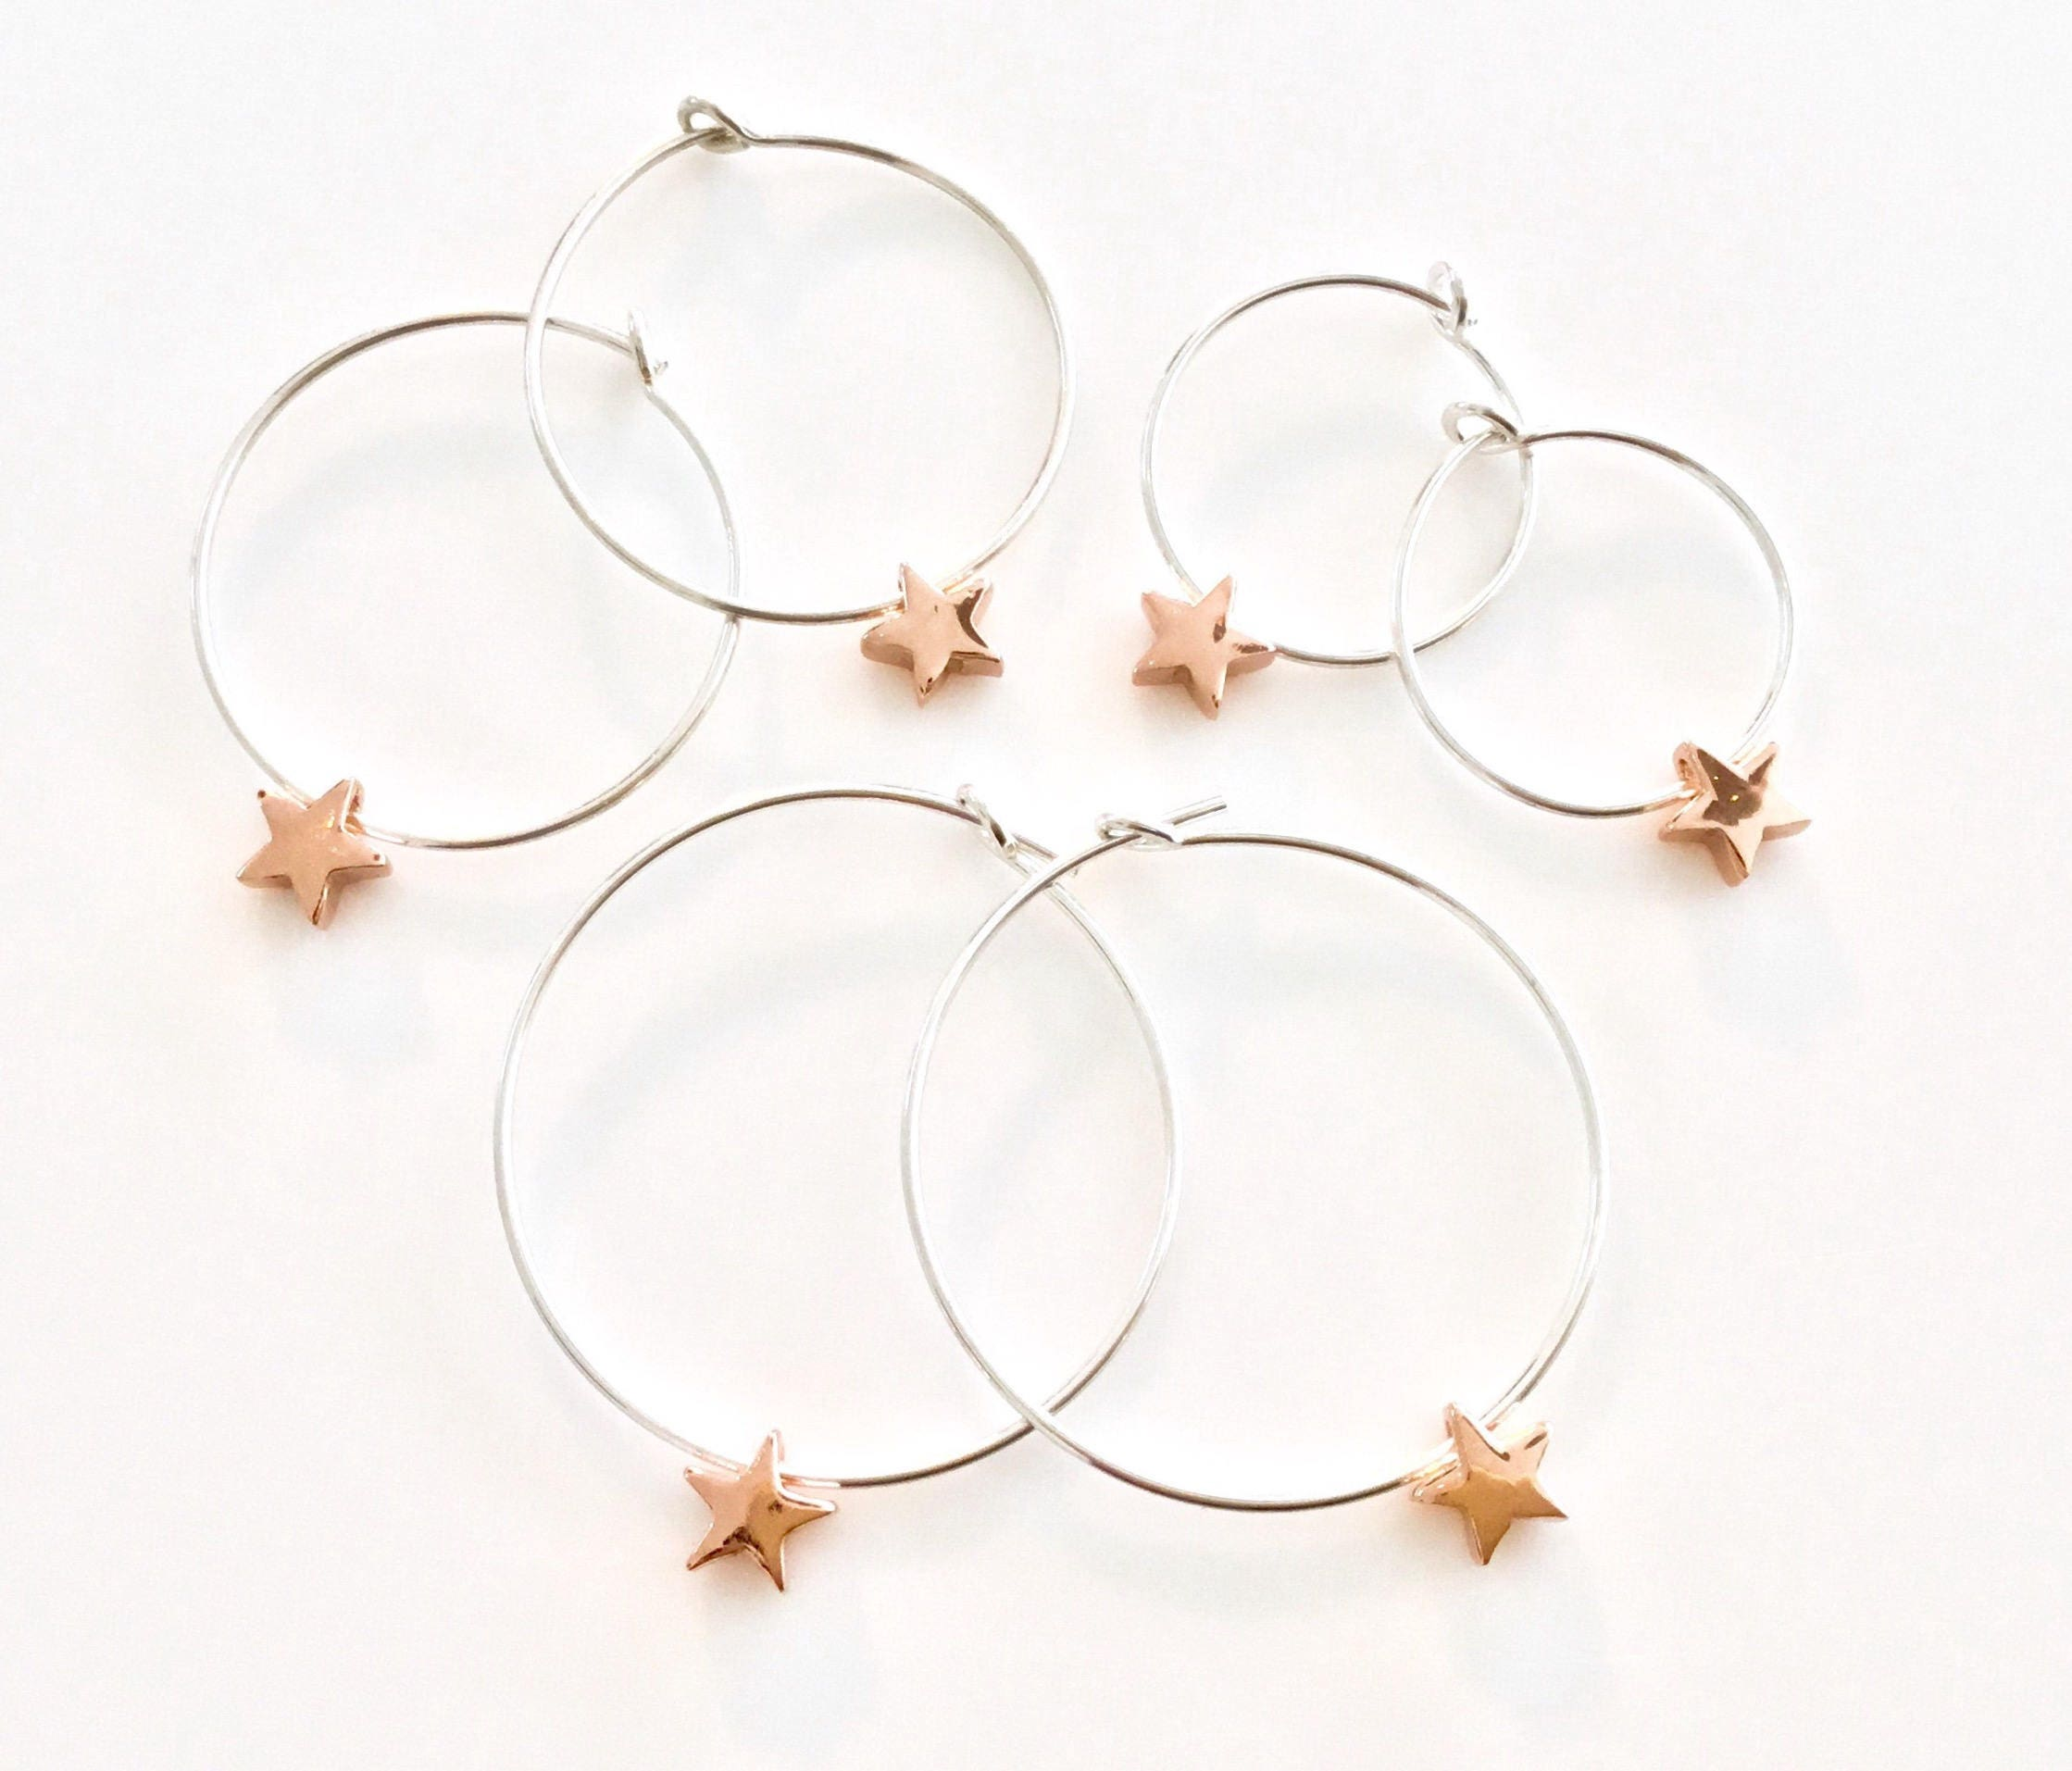 Rose Gold and Silver Earrings Star Earrings Sterling Silver Hoop Earrings Star Hoops Small Gold Hoop Earrings Teen Gift Rose Gold Jewellery